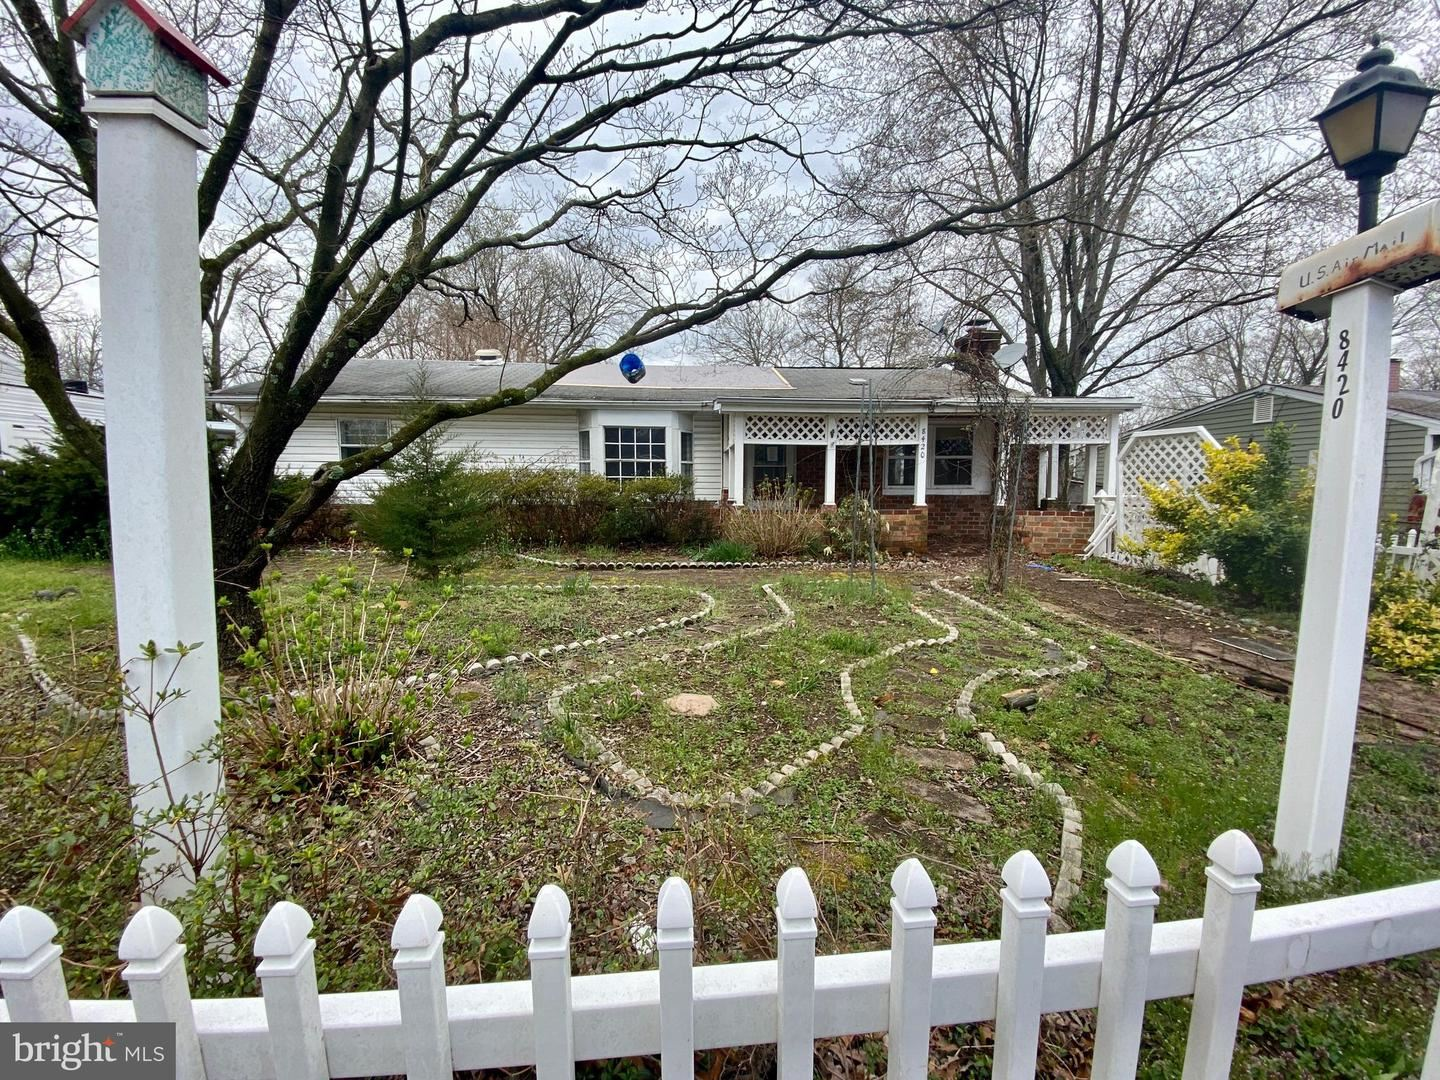 8420 FOREST DR, Pasadena, MD 21122 - MLS#: MDAA471304